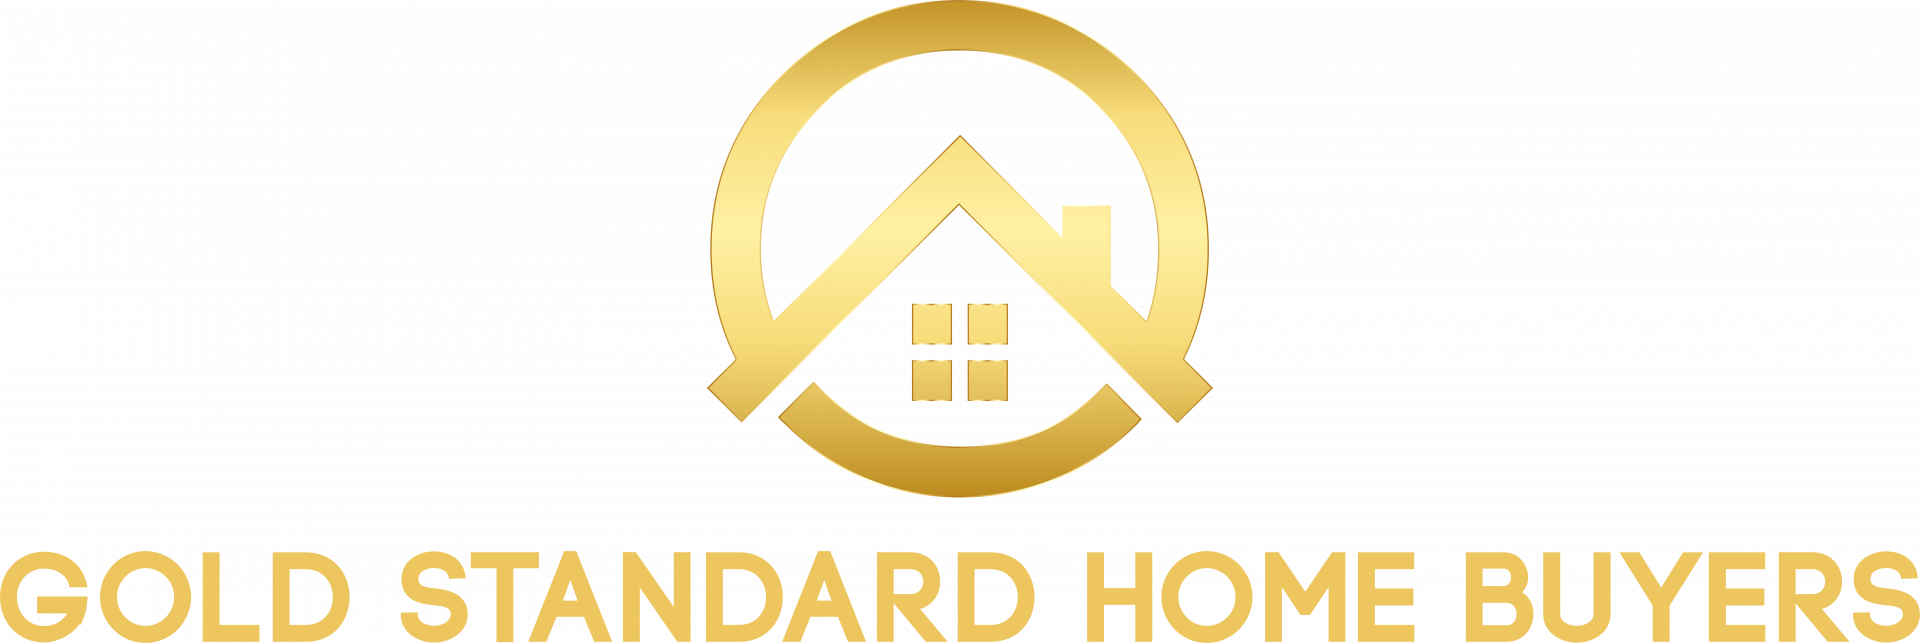 Gold Standard Home Buyers logo